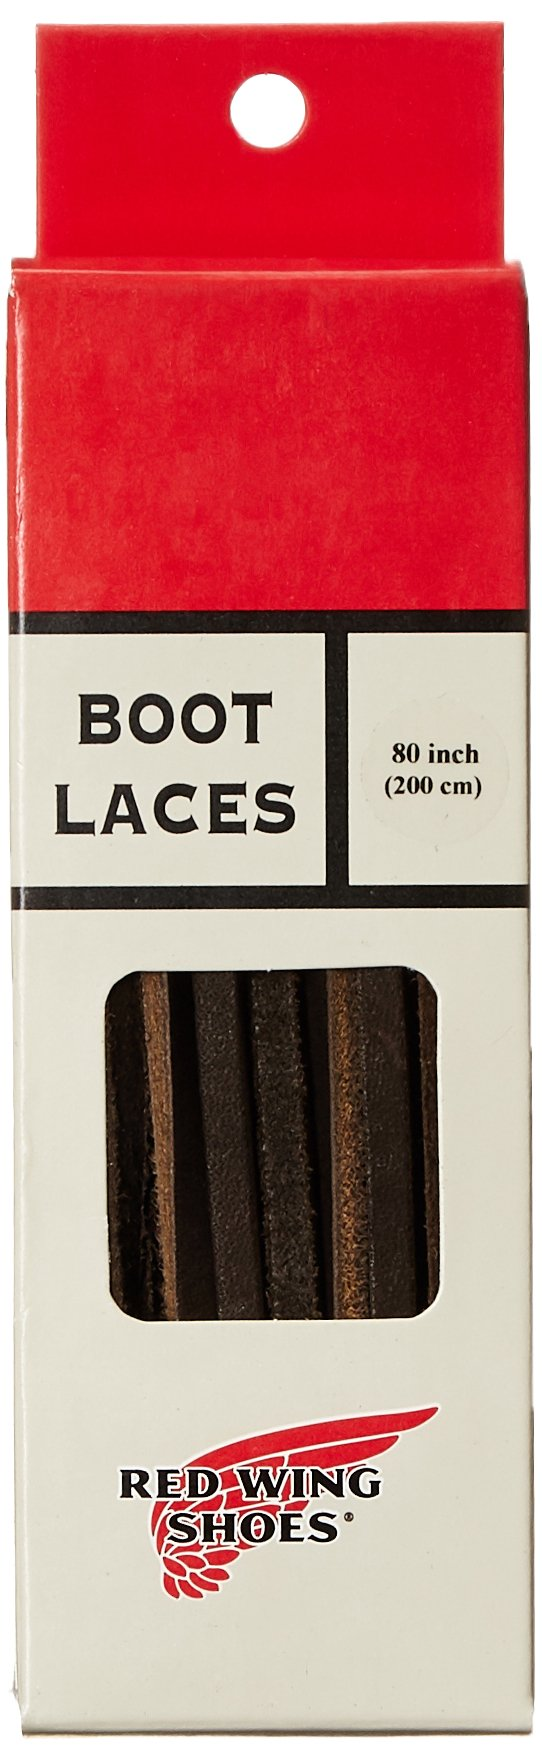 Red Wing Heritage Leather Shoe Lace, Dark Coffee,80 inch